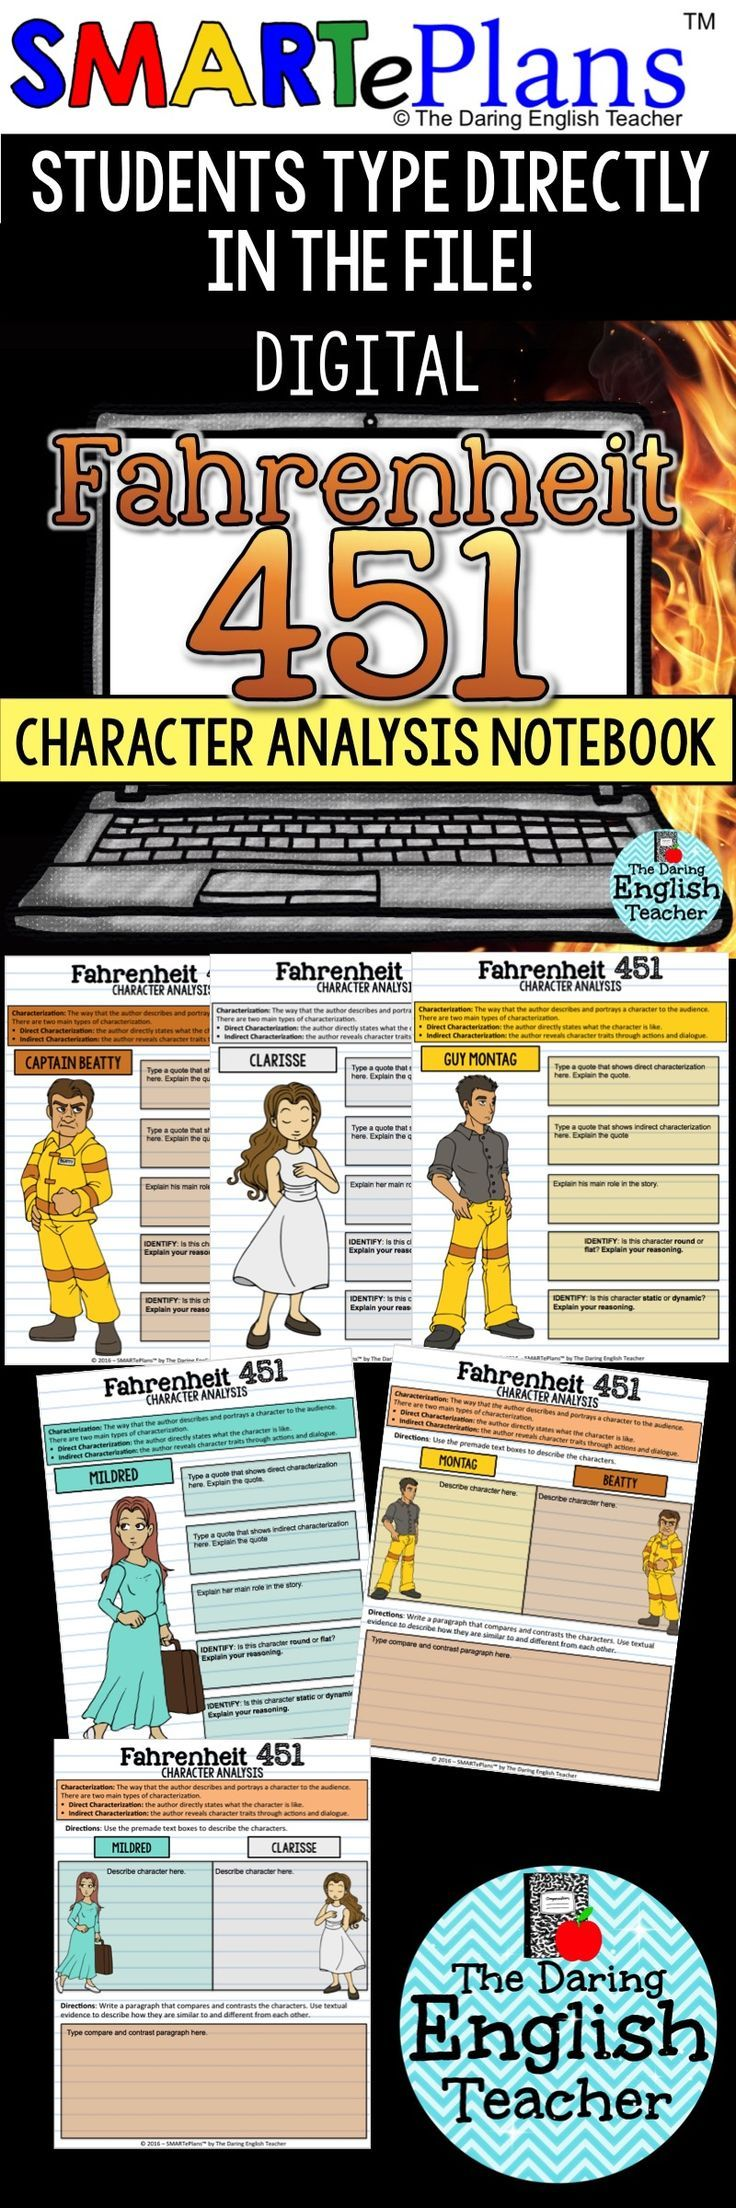 ideas about fahrenheit ray bradbury books digital fahrenheit 451 character analysis interactive notebook ideal for the digital high school english classroom